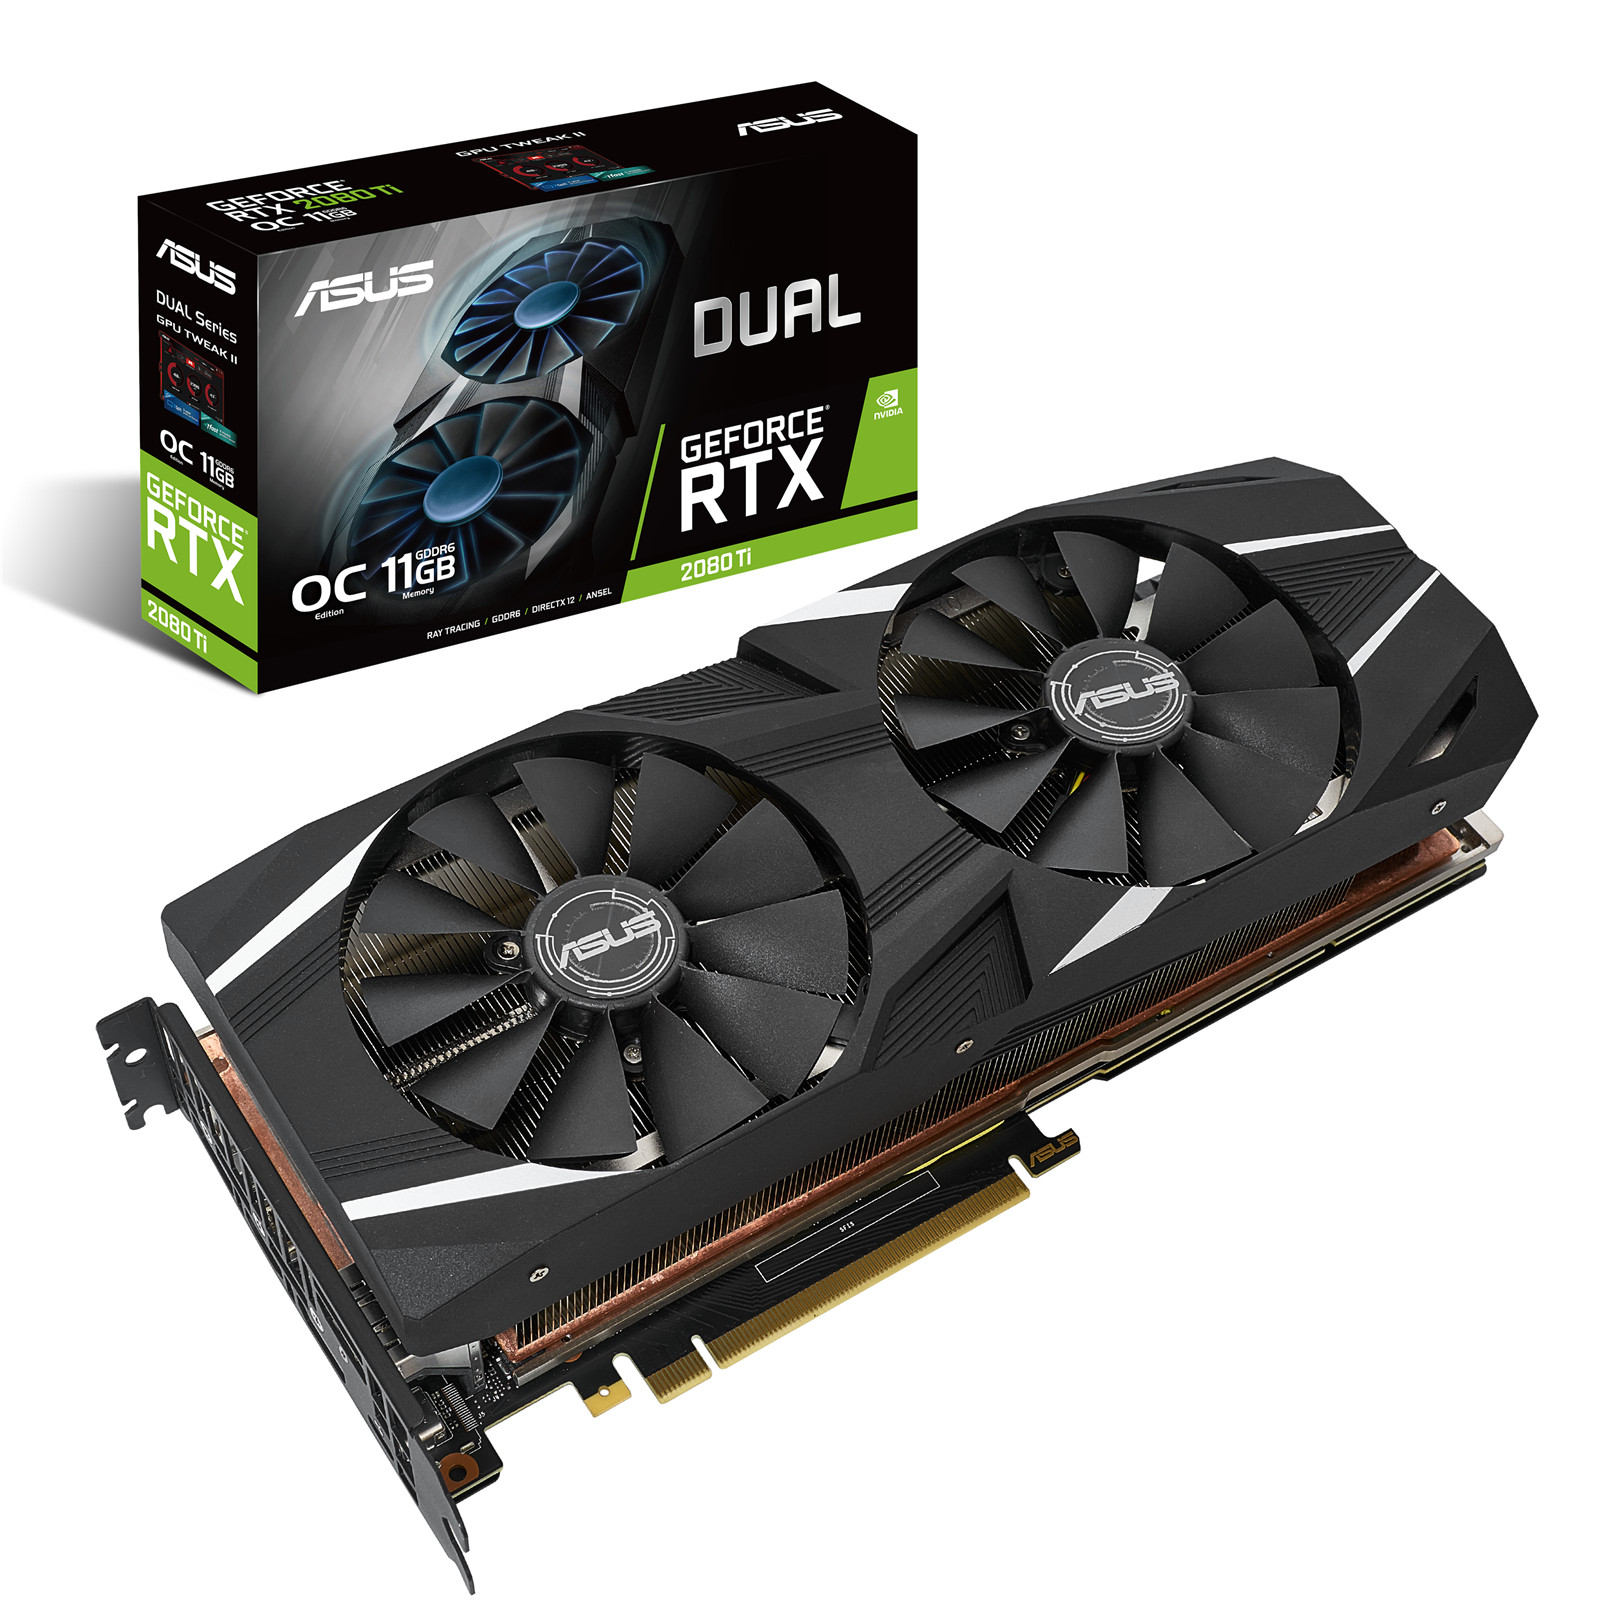 Buy the ASUS GeForce RTX 2080 Ti Dual OC Edition Graphics